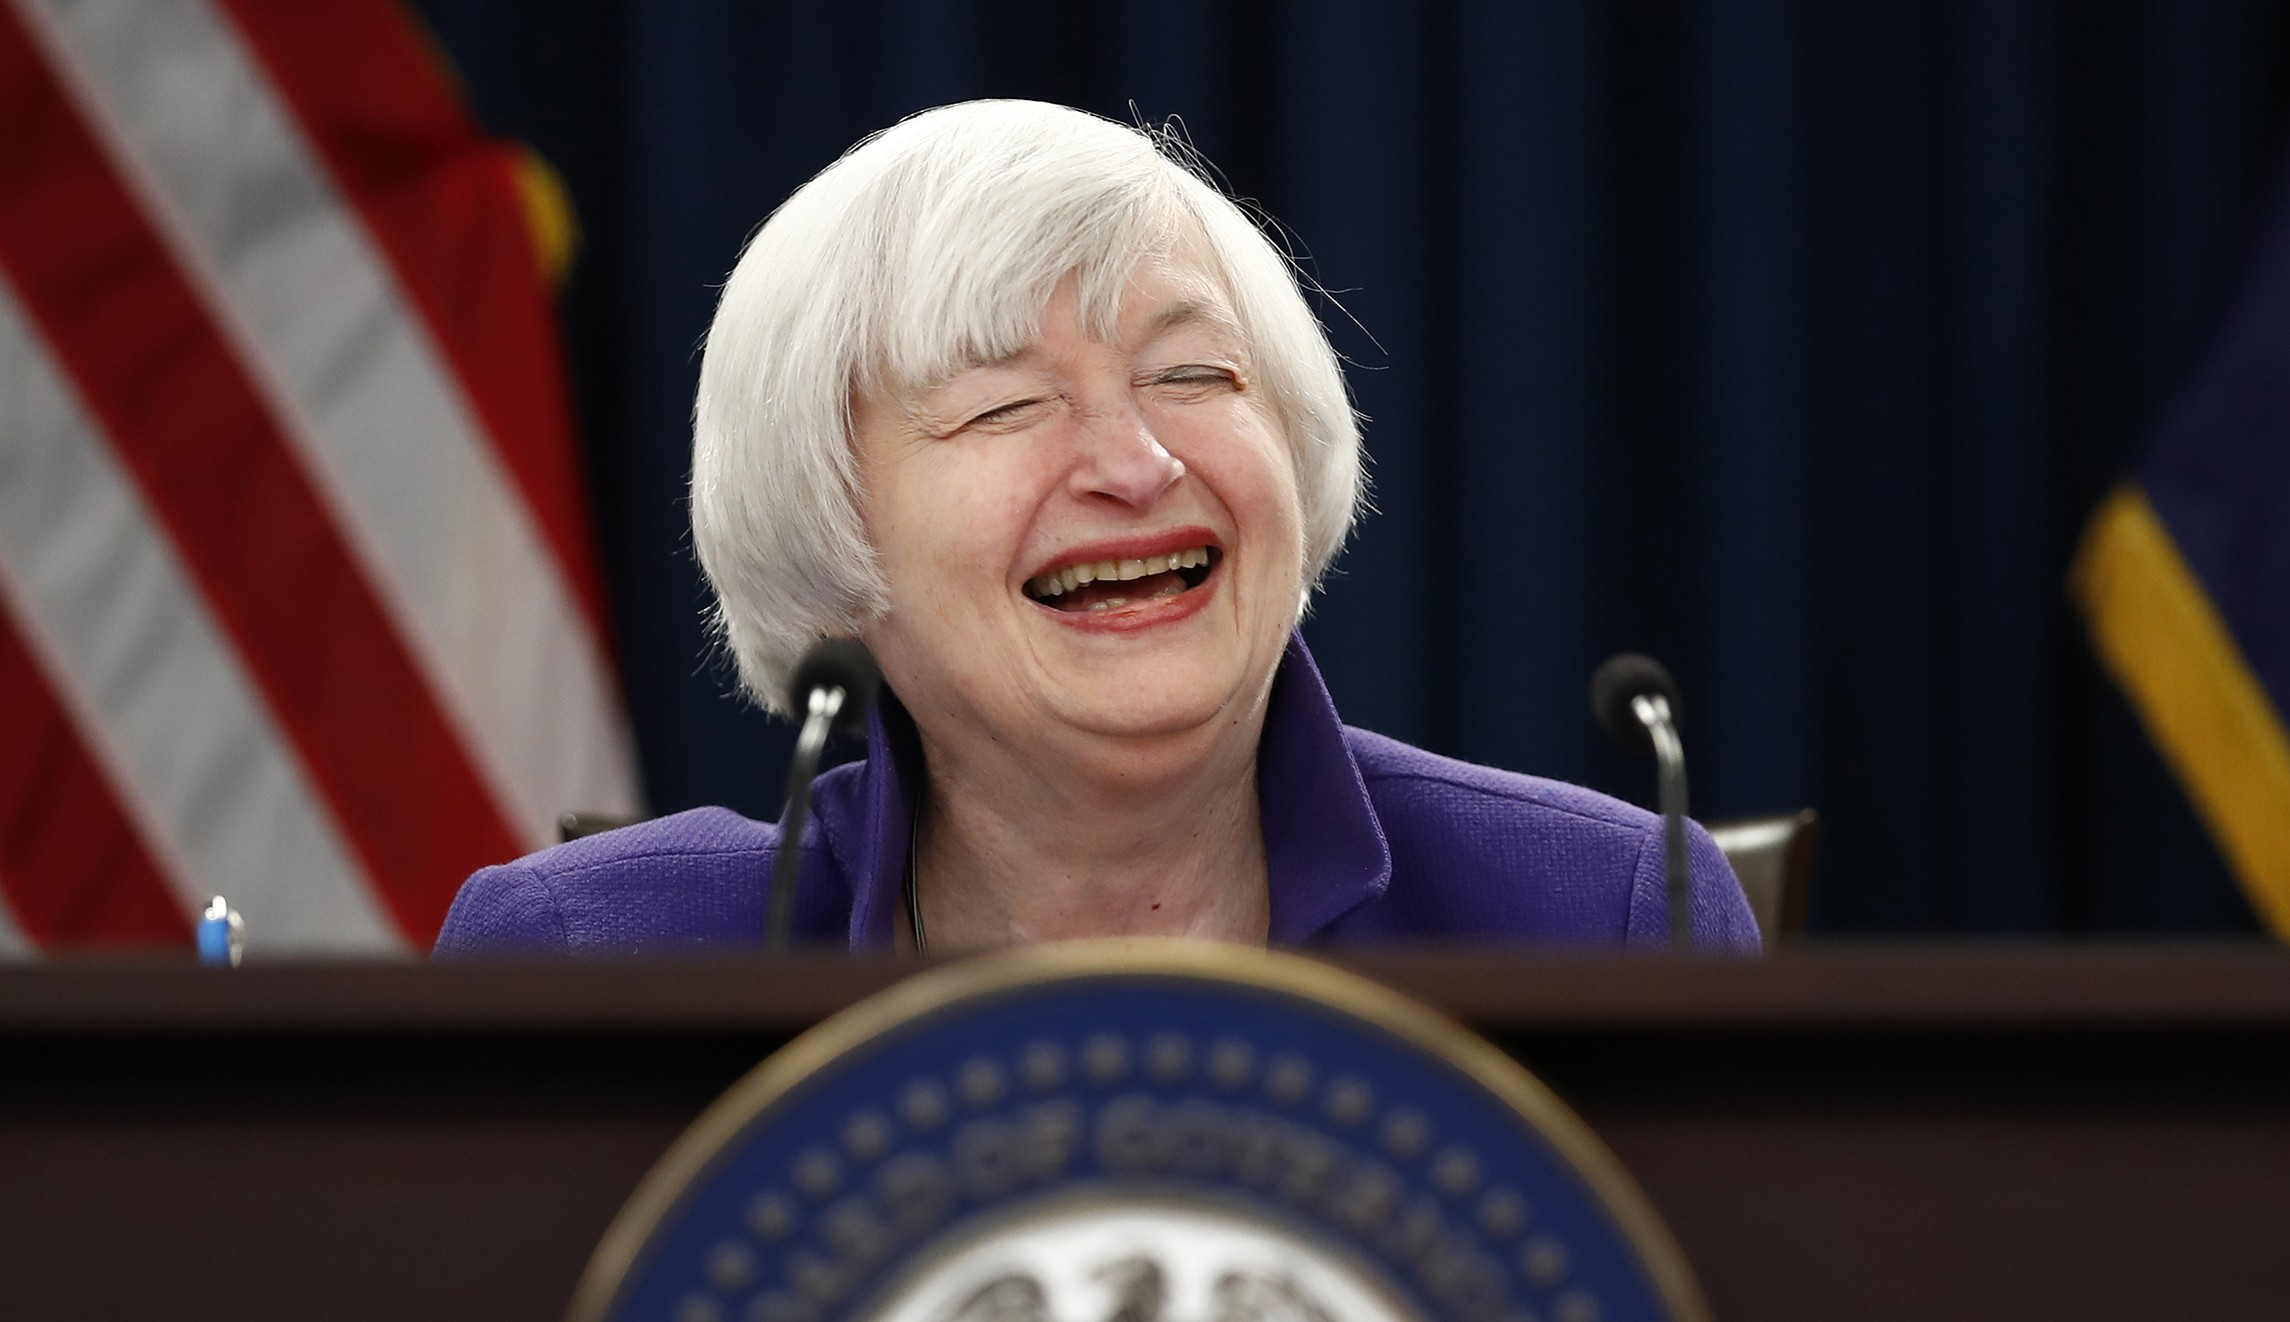 Janet_Yellen_owns_bitcoin.jpg